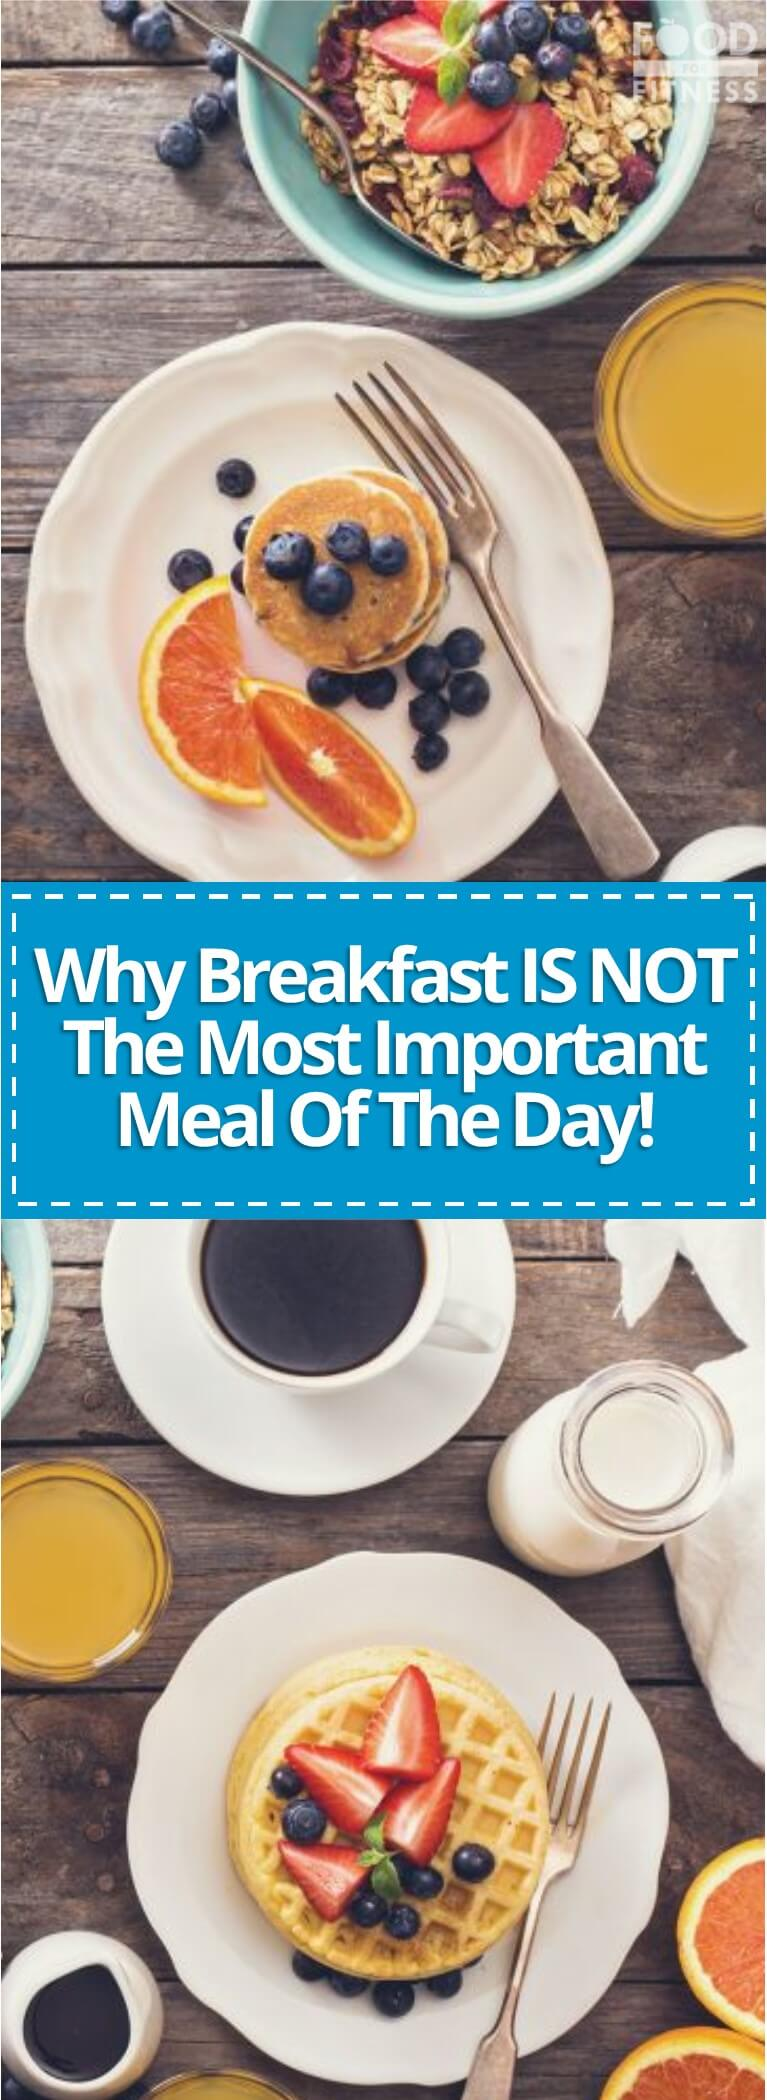 Discover why breakfast may not be as important as you may think.